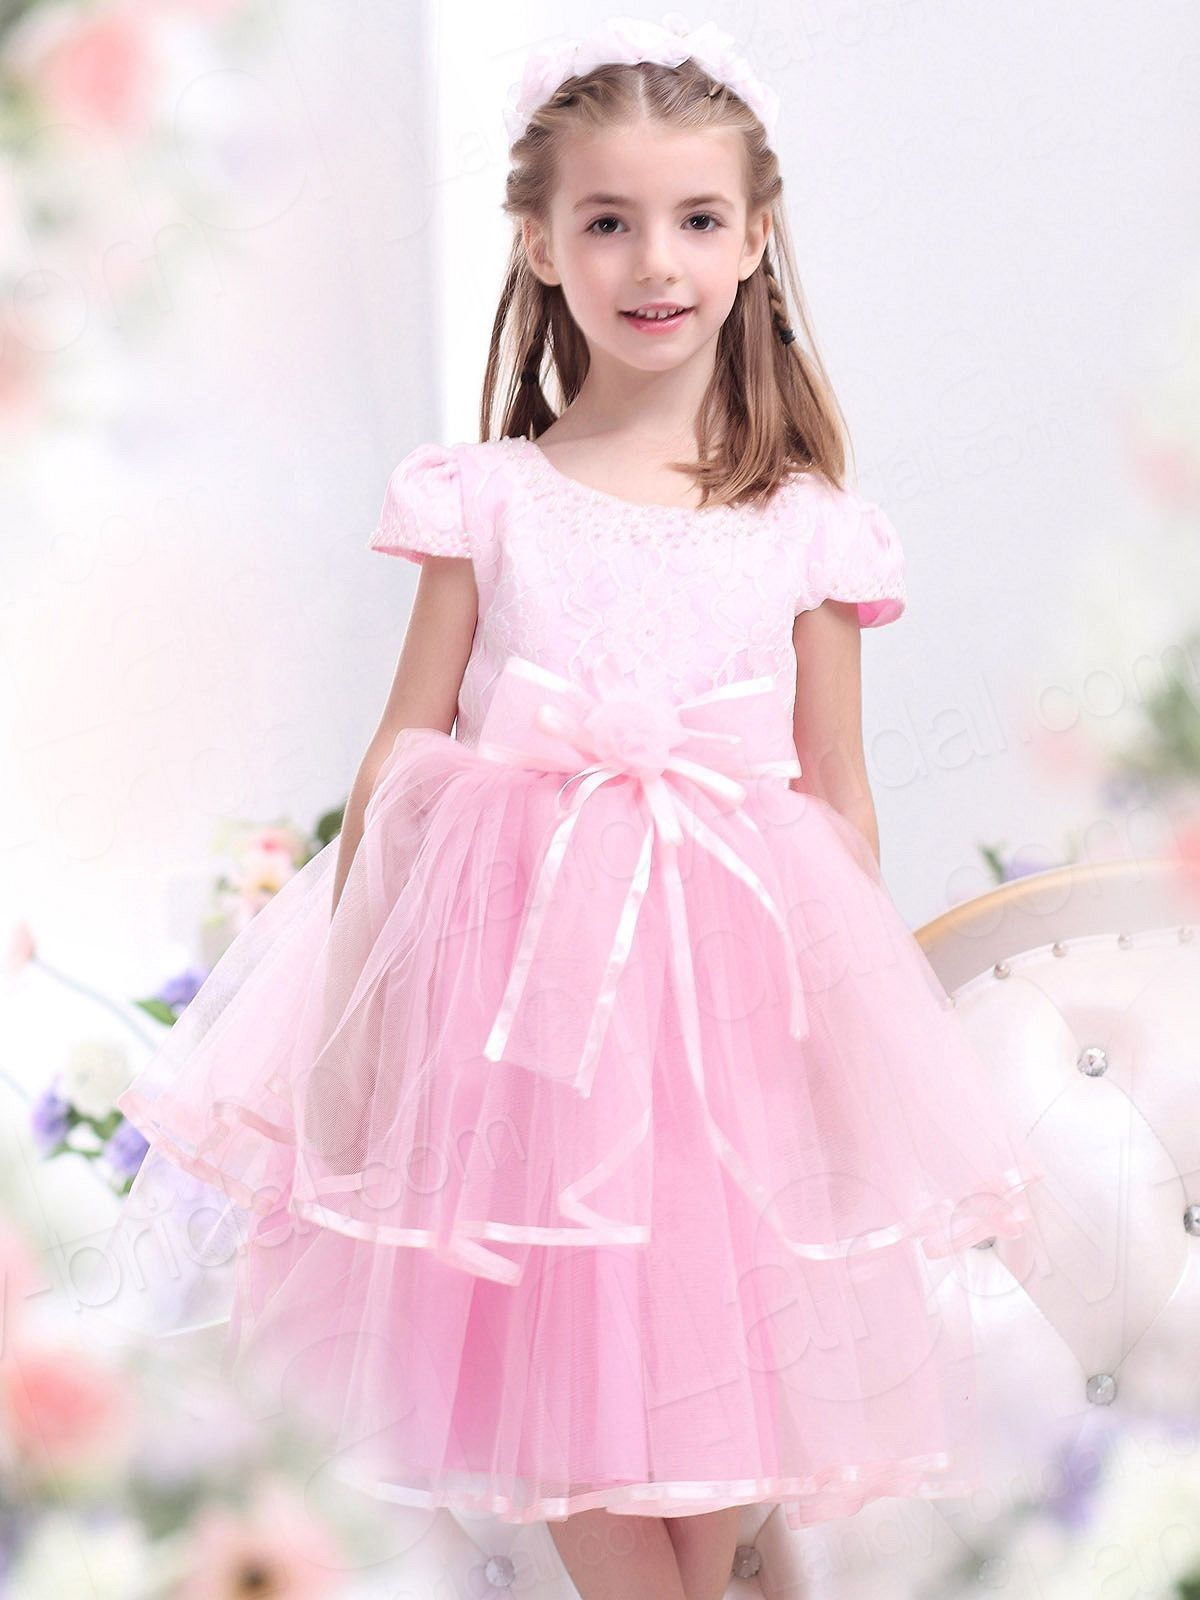 78  images about Pink for Girls on Pinterest - Cute little girls ...